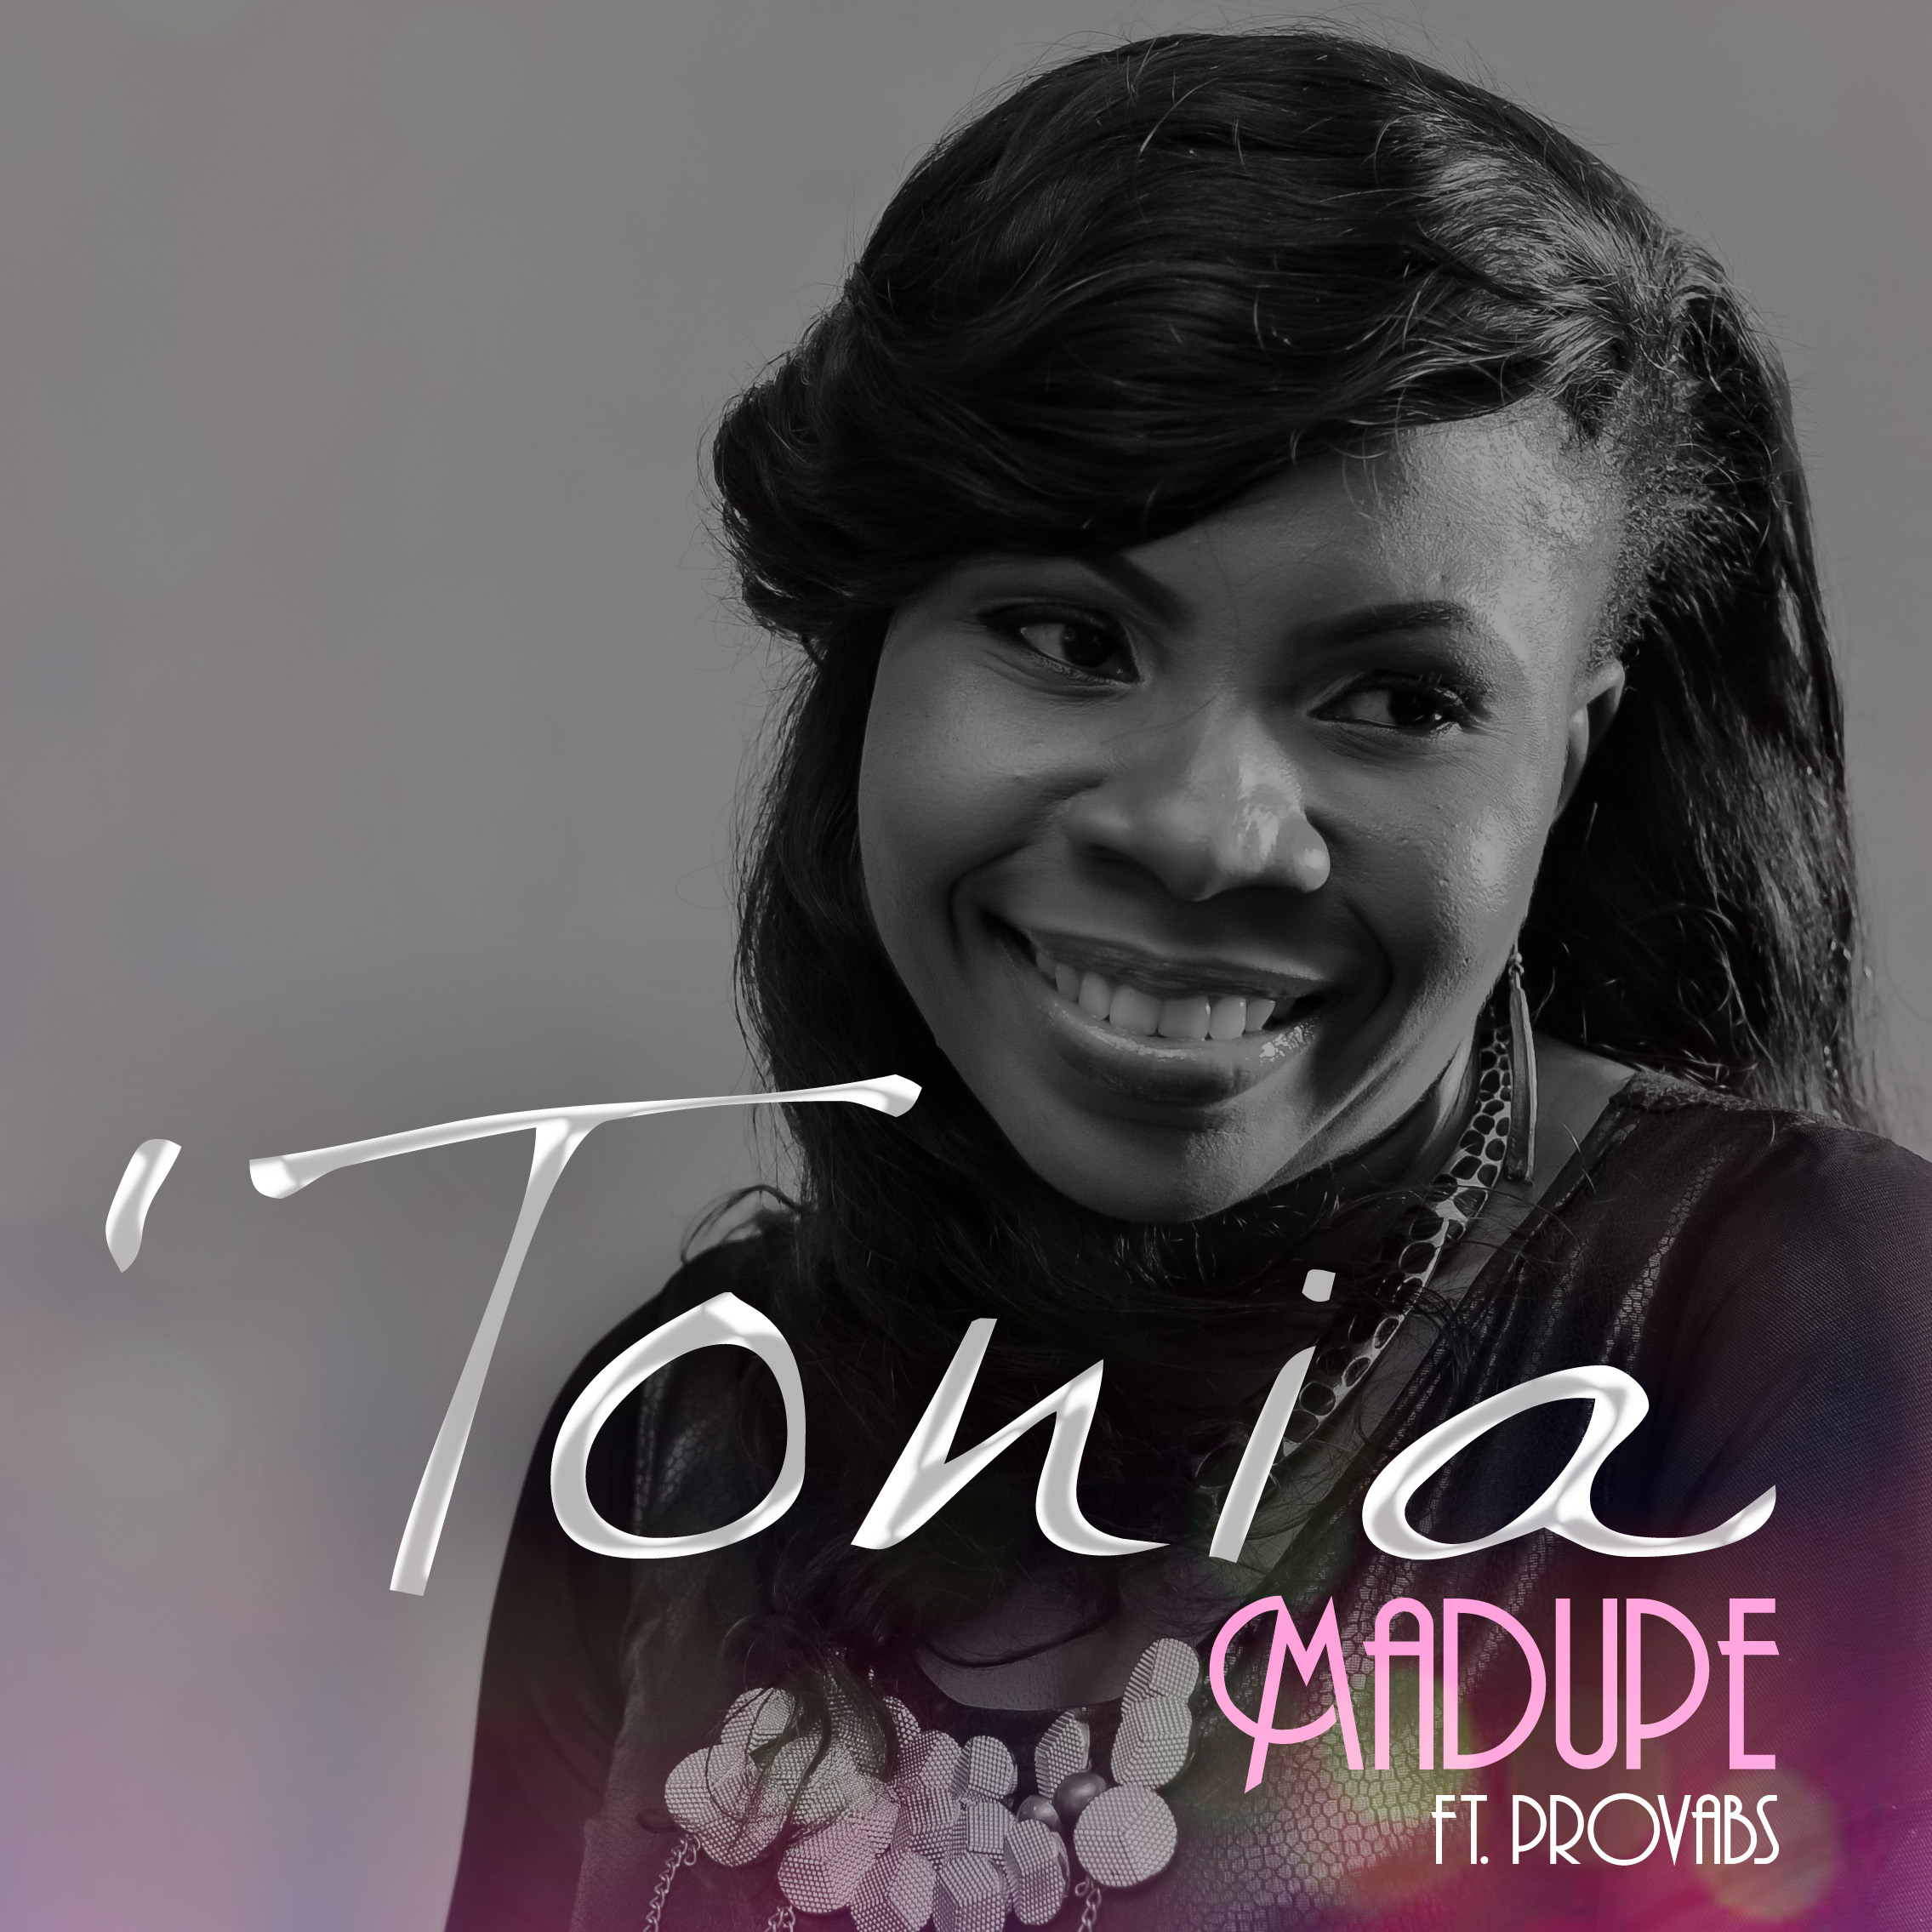 Tonia - Madupe ft. Provabs-Art